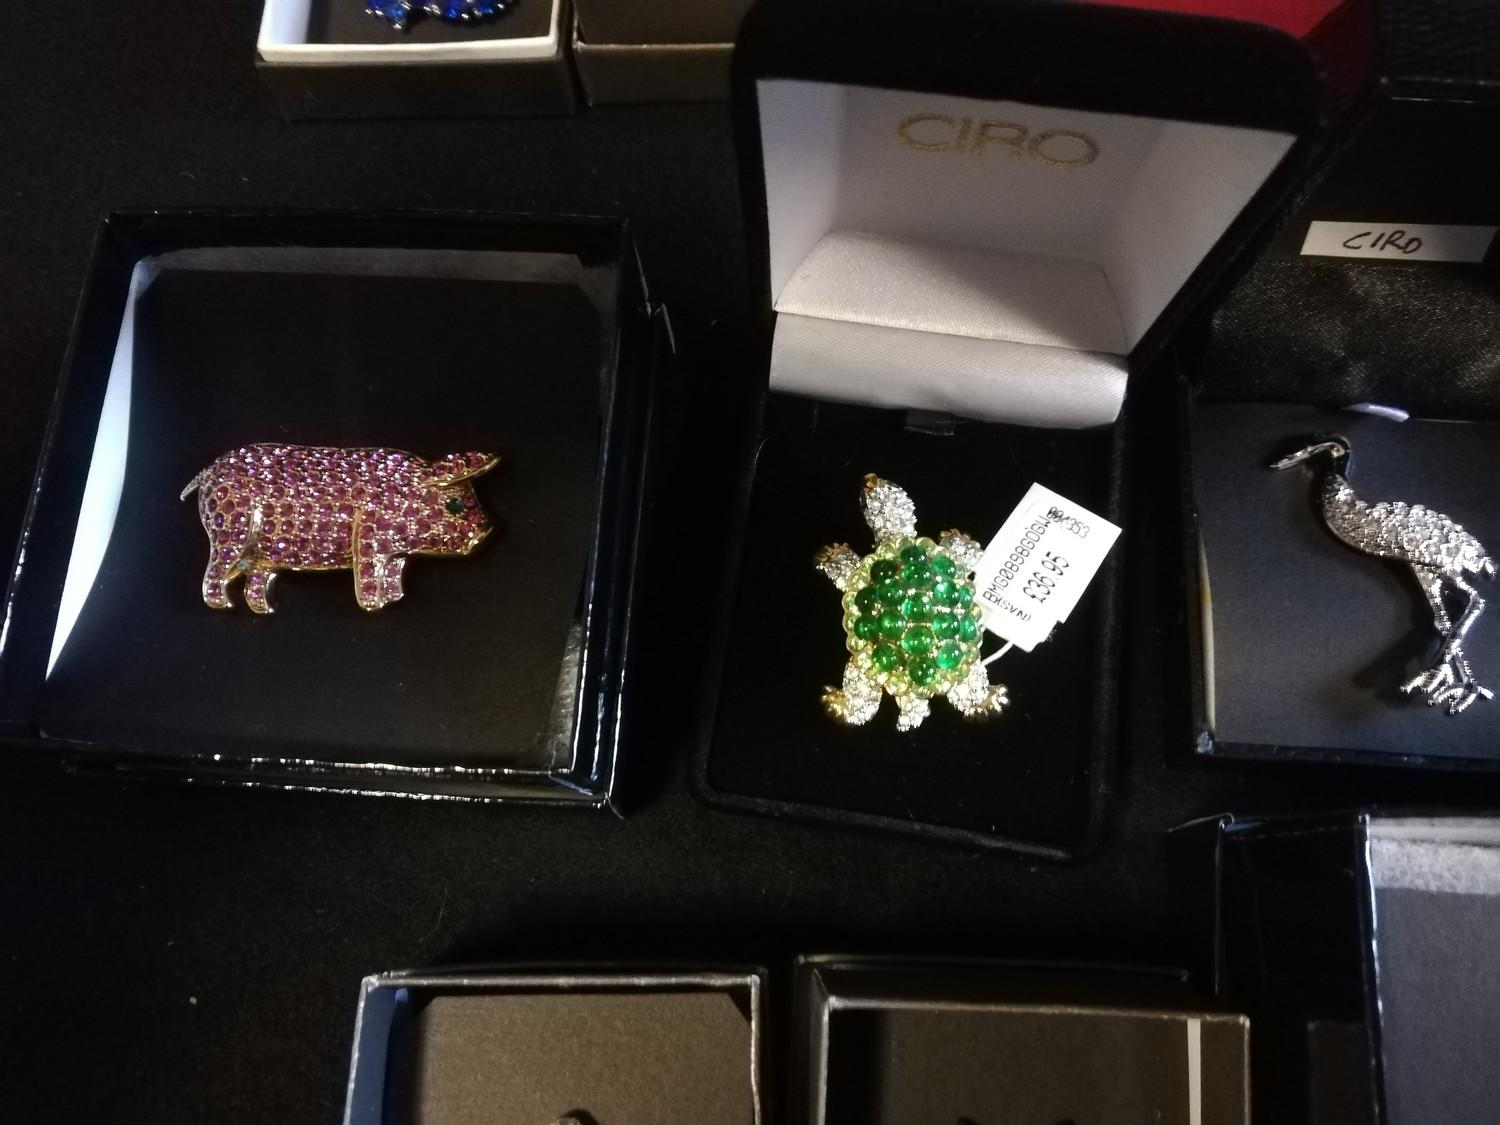 Collection of Ciro brooches inc pig, beehive with bees, cow, birds & turtle + 2 empty bags - Image 6 of 11